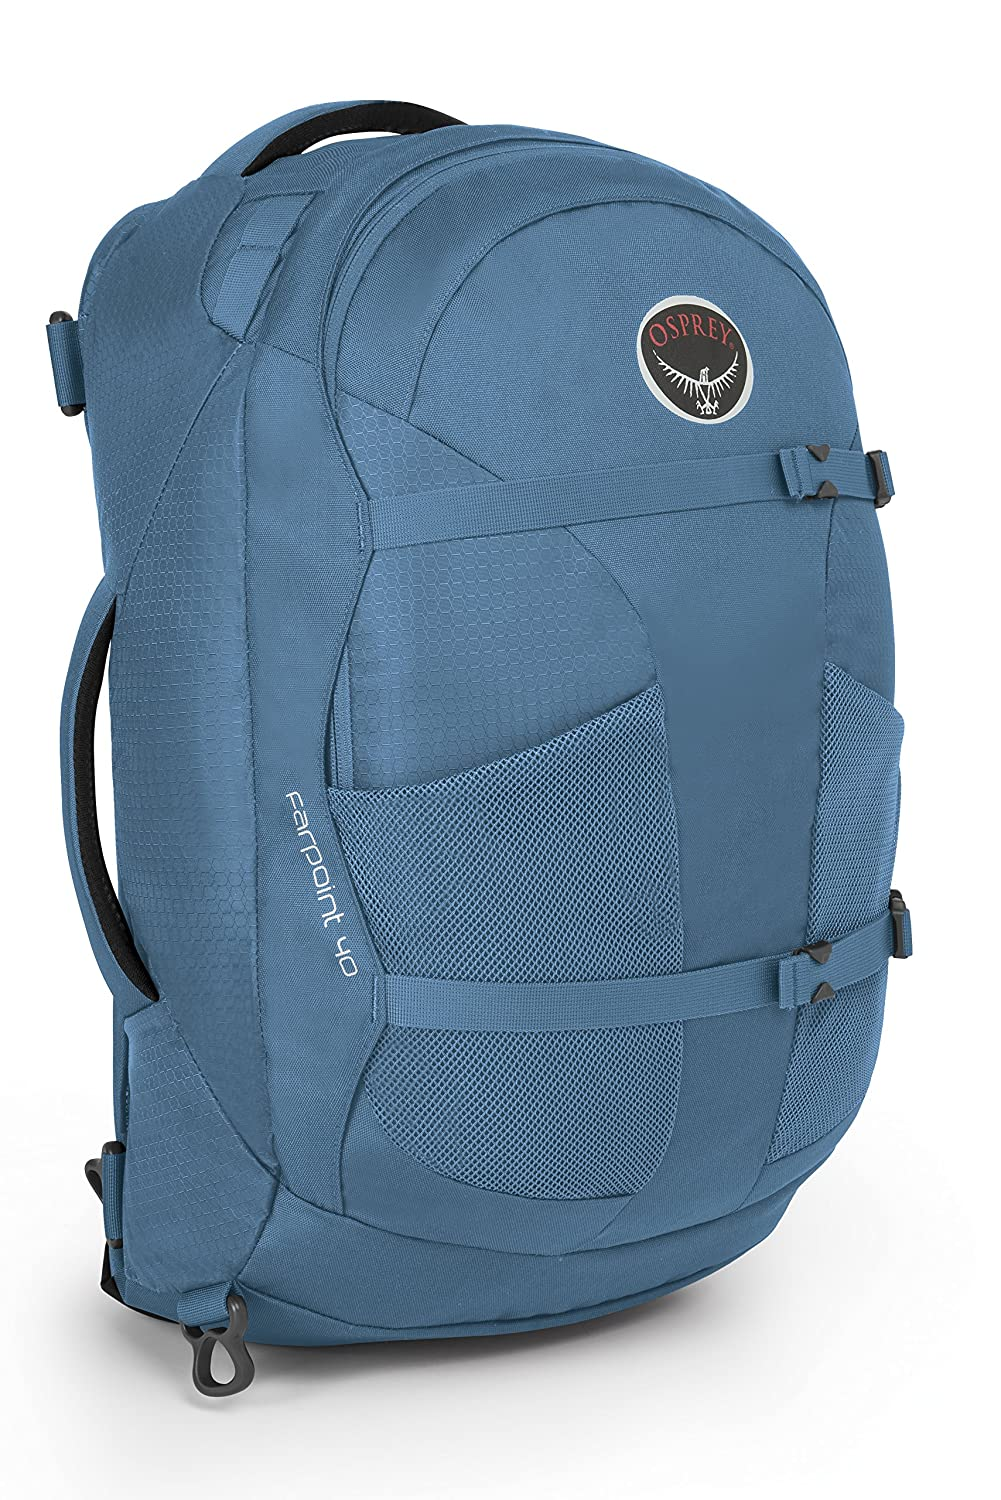 Amazon.com   Osprey Packs Farpoint 40 Travel Backpack   Sports   Outdoors 452a27c8af394